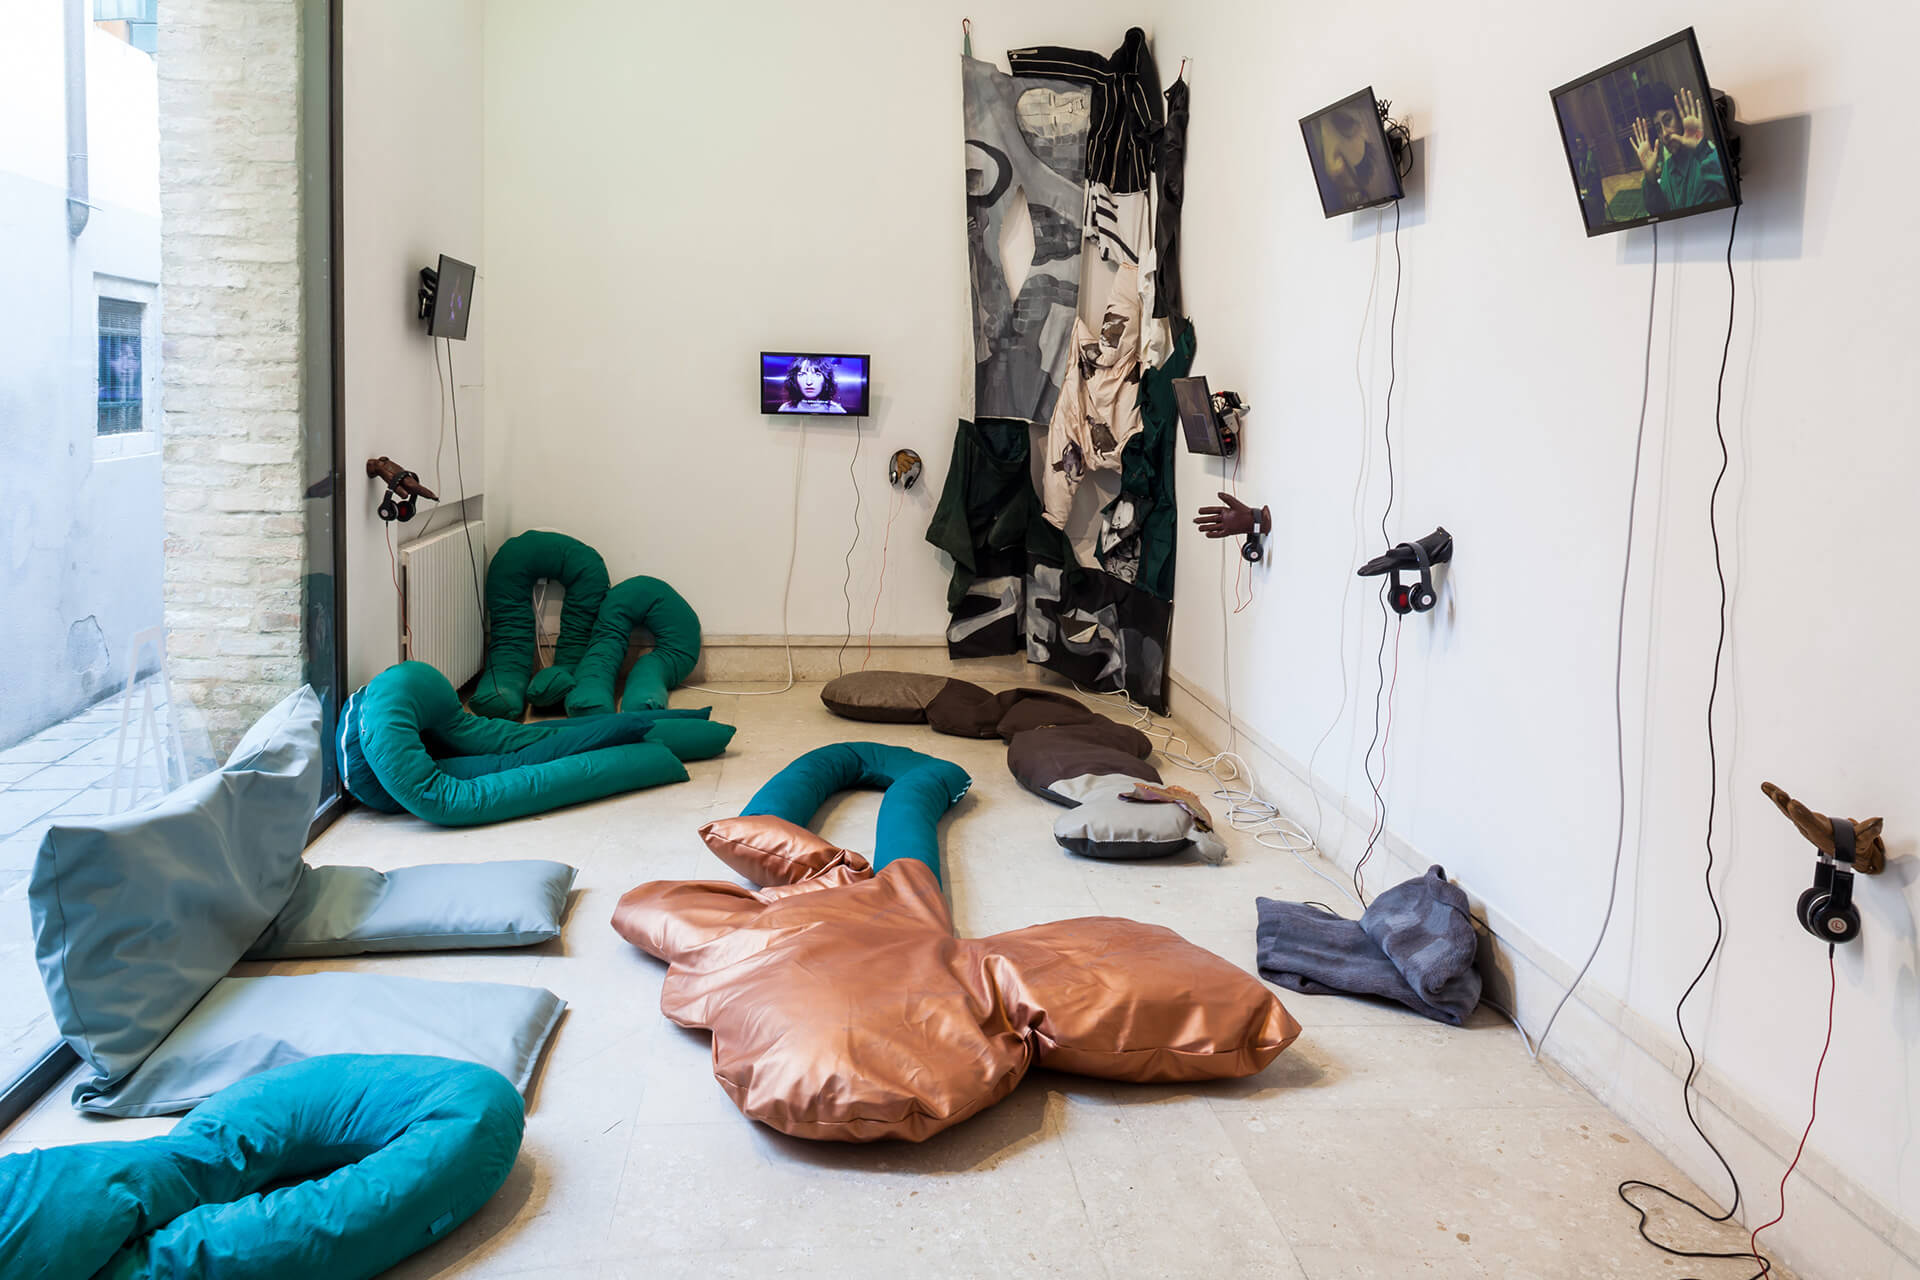 Installation view of Liv Schulman's solo show, An international subconscious awareness of capitalism at A plus A Gallery in the beginning of 2020| Venice reopens post COVID-19 lockdown | STIRworld